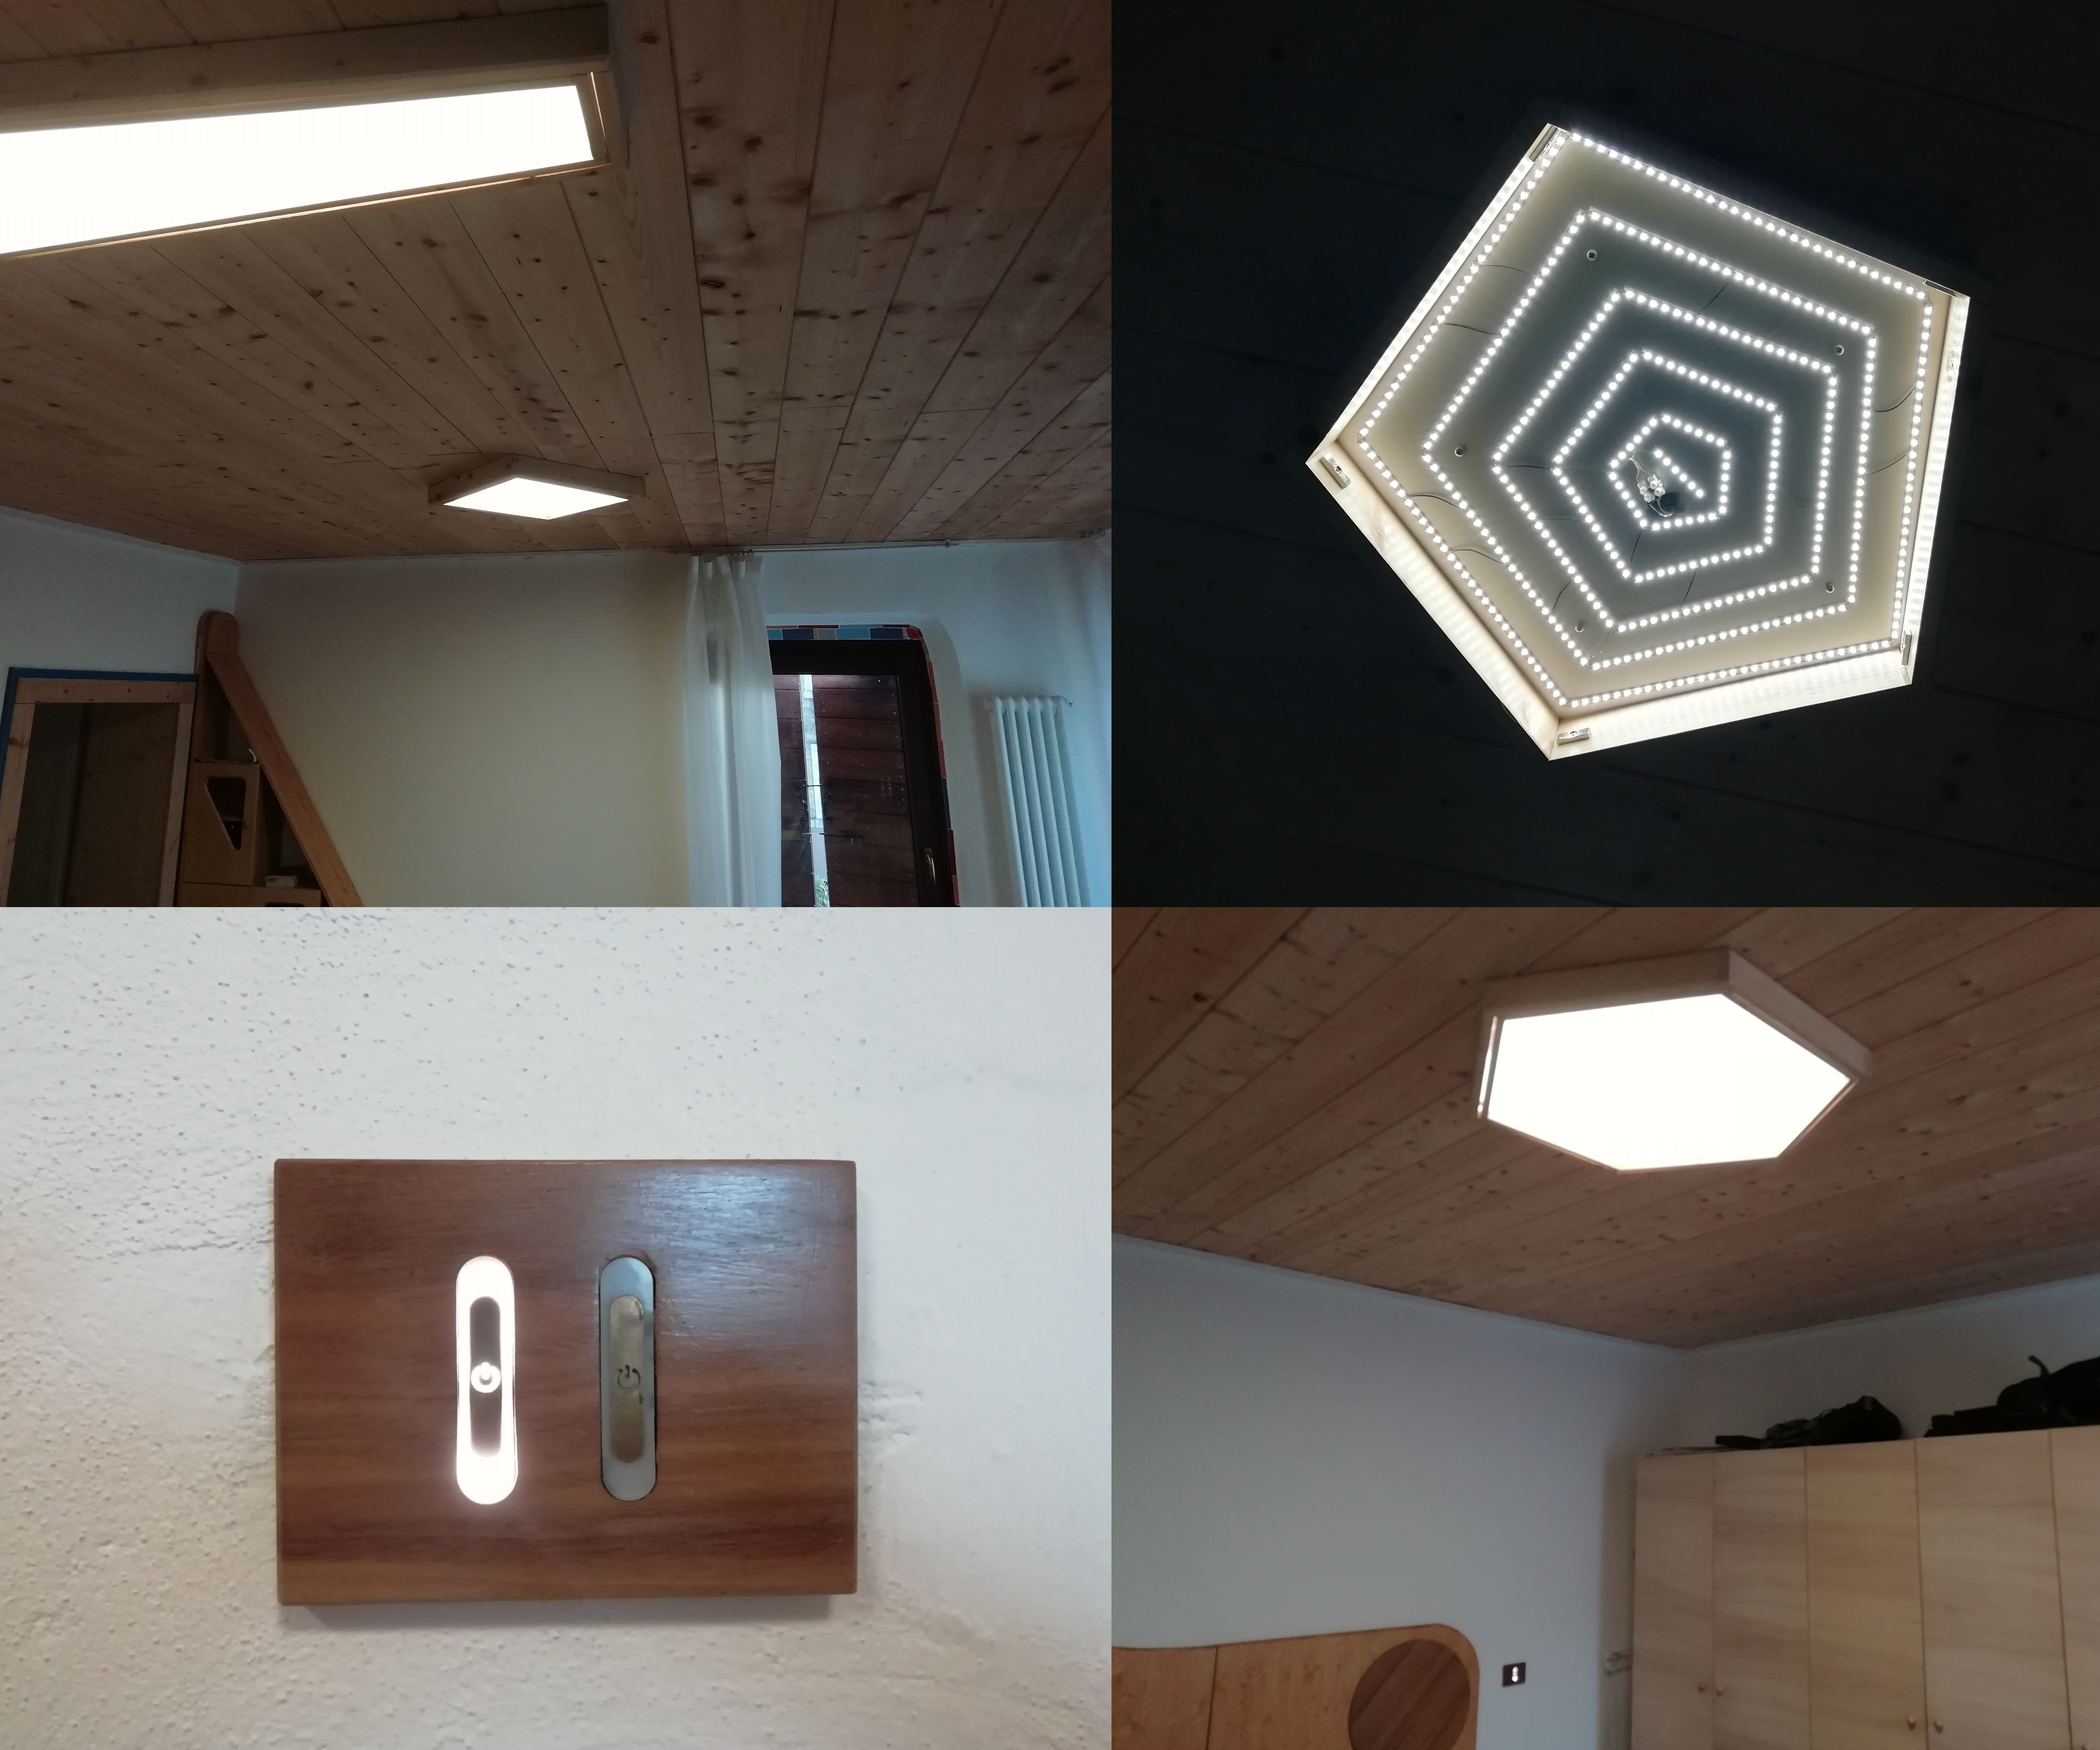 House Lighting System With Wooden LED Panels and Touch Buttons